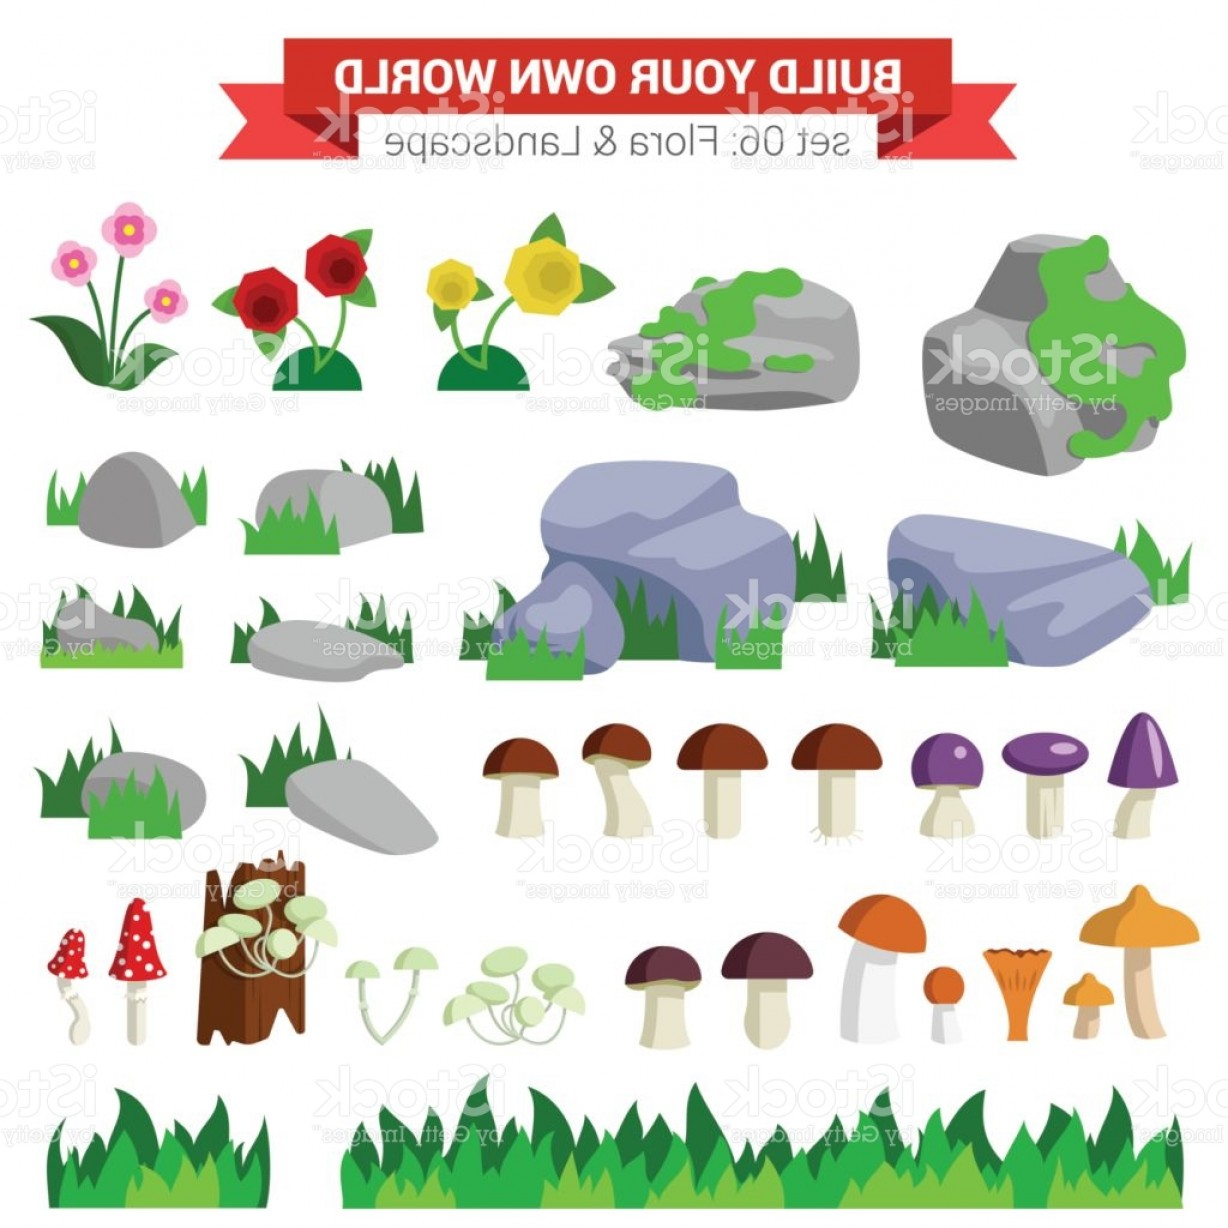 Vector Stone Landscaping: Flat Style Flora Landscape Environment Stone Flower Mushroom Moss Bush Grass Nature Gm